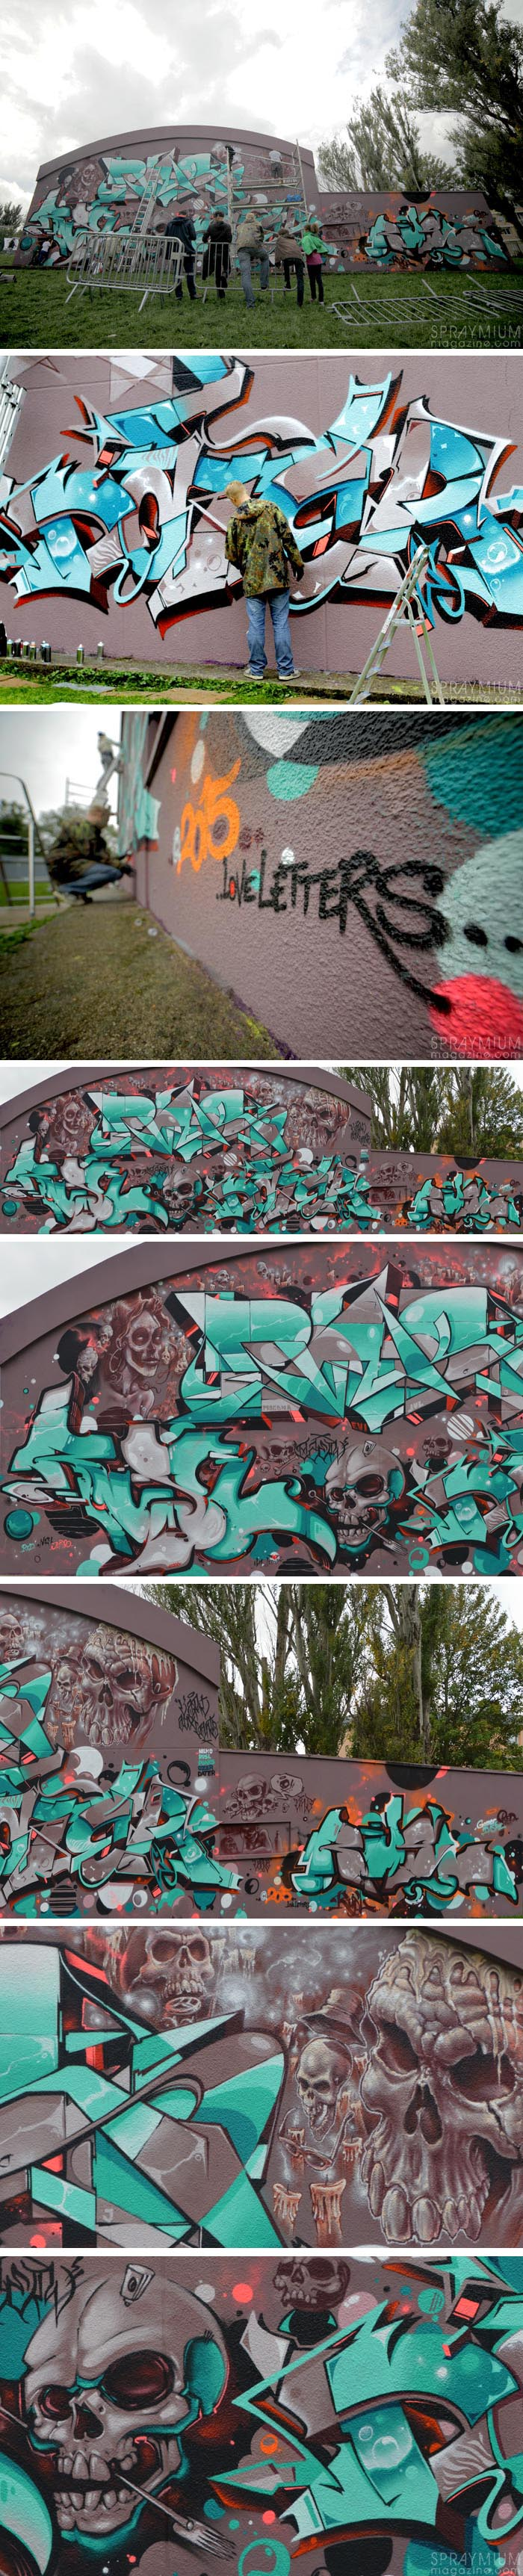 artauxgants spraymium festival graffiti writing art11 spraycanart loveletters puaks ozer nilko rusl dater